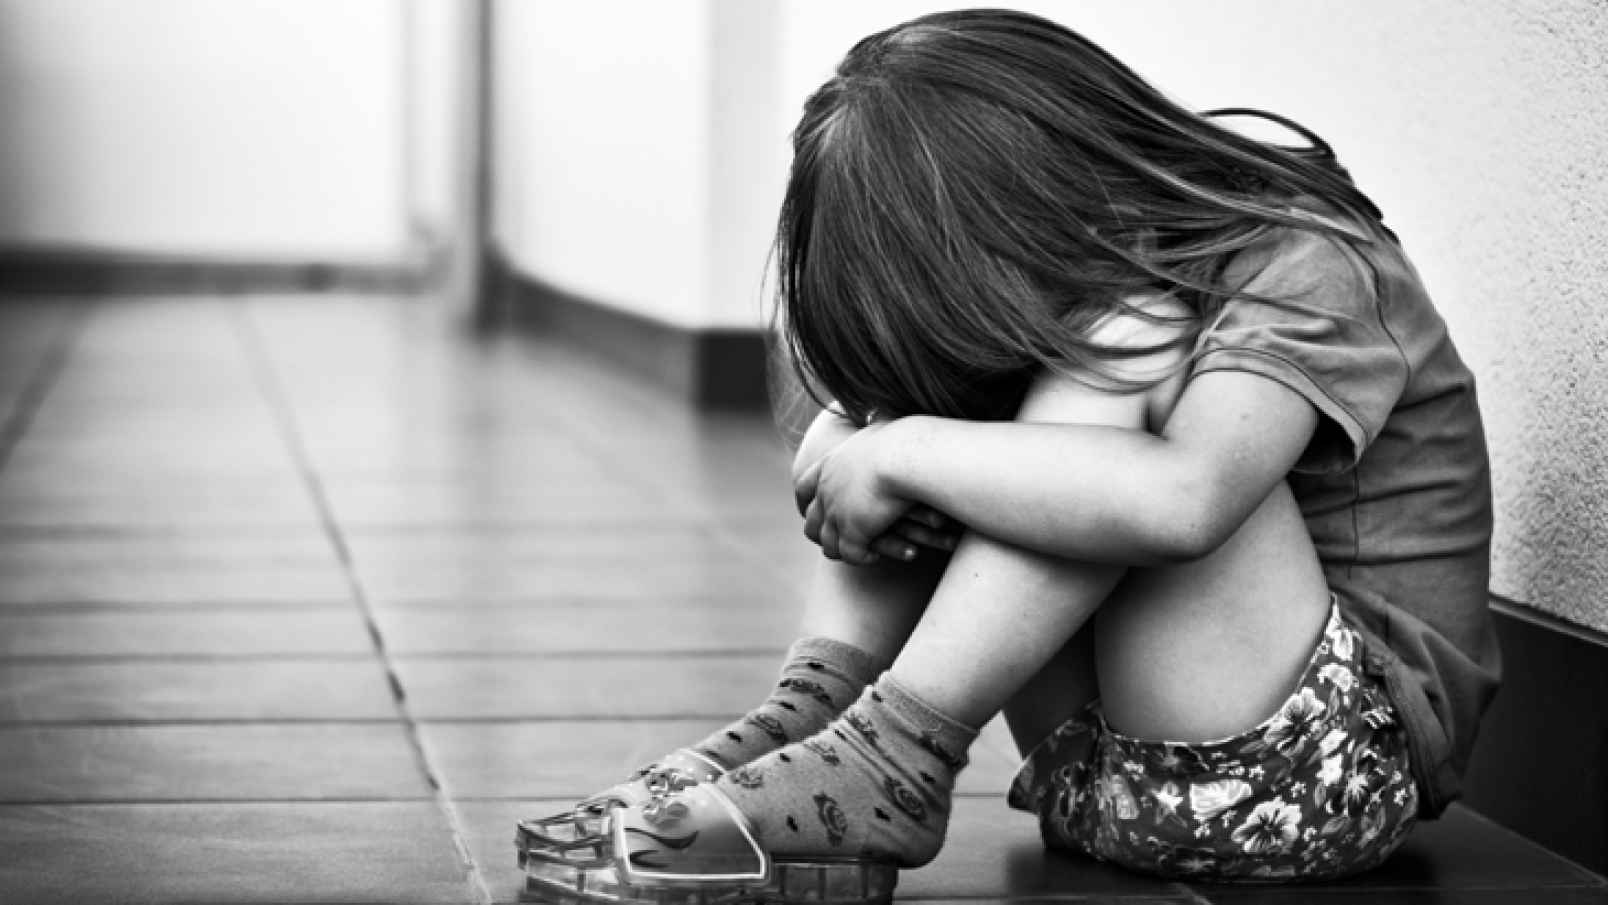 3-year-old Raped by Minor Neighbour in Hisar